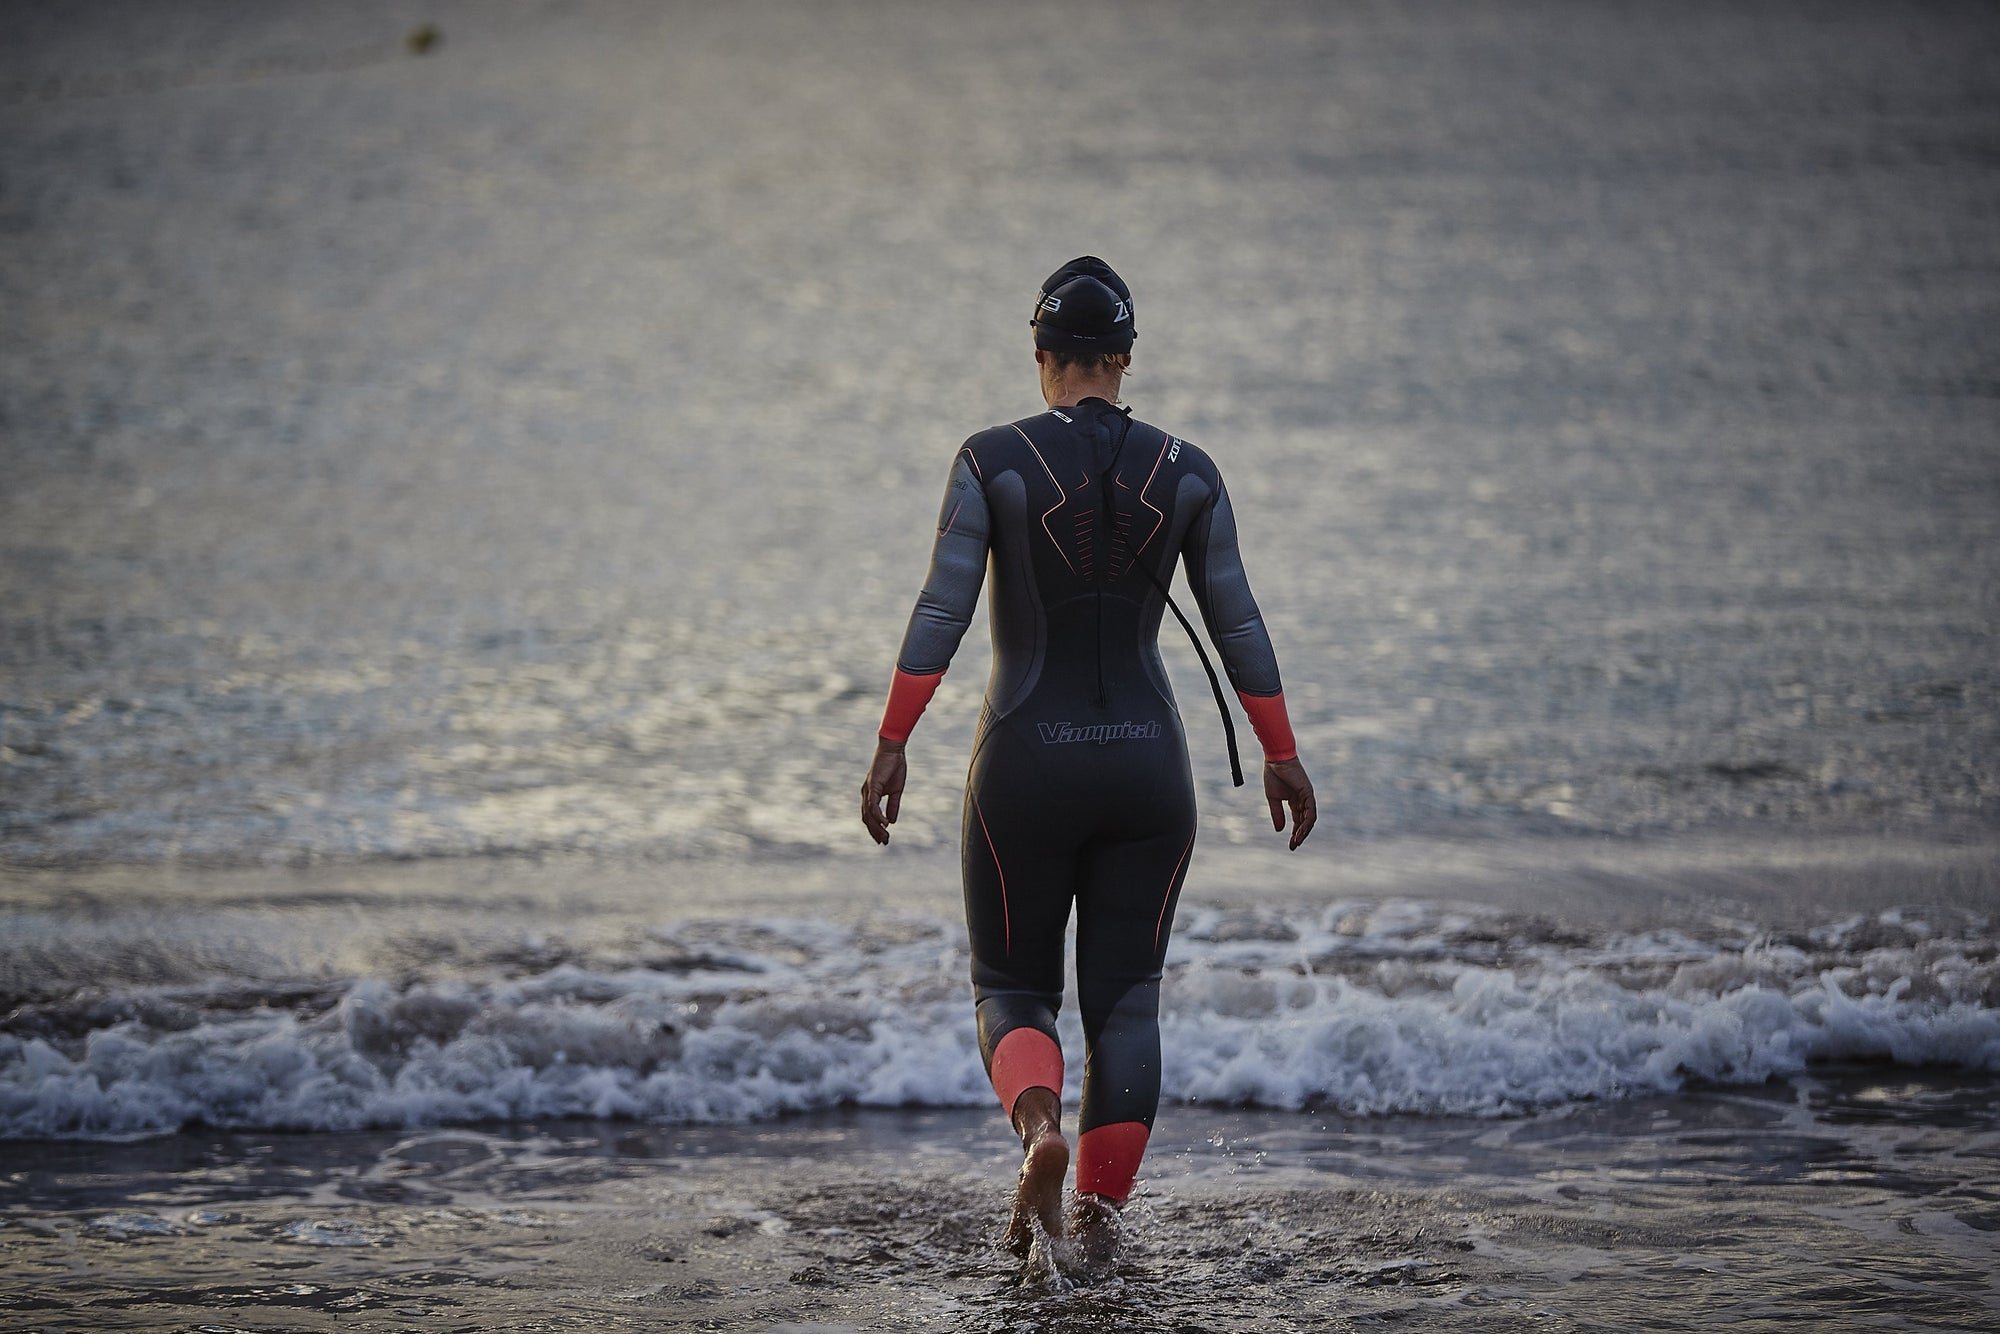 Triathlon & Mental Health: How to Cope - Part 2